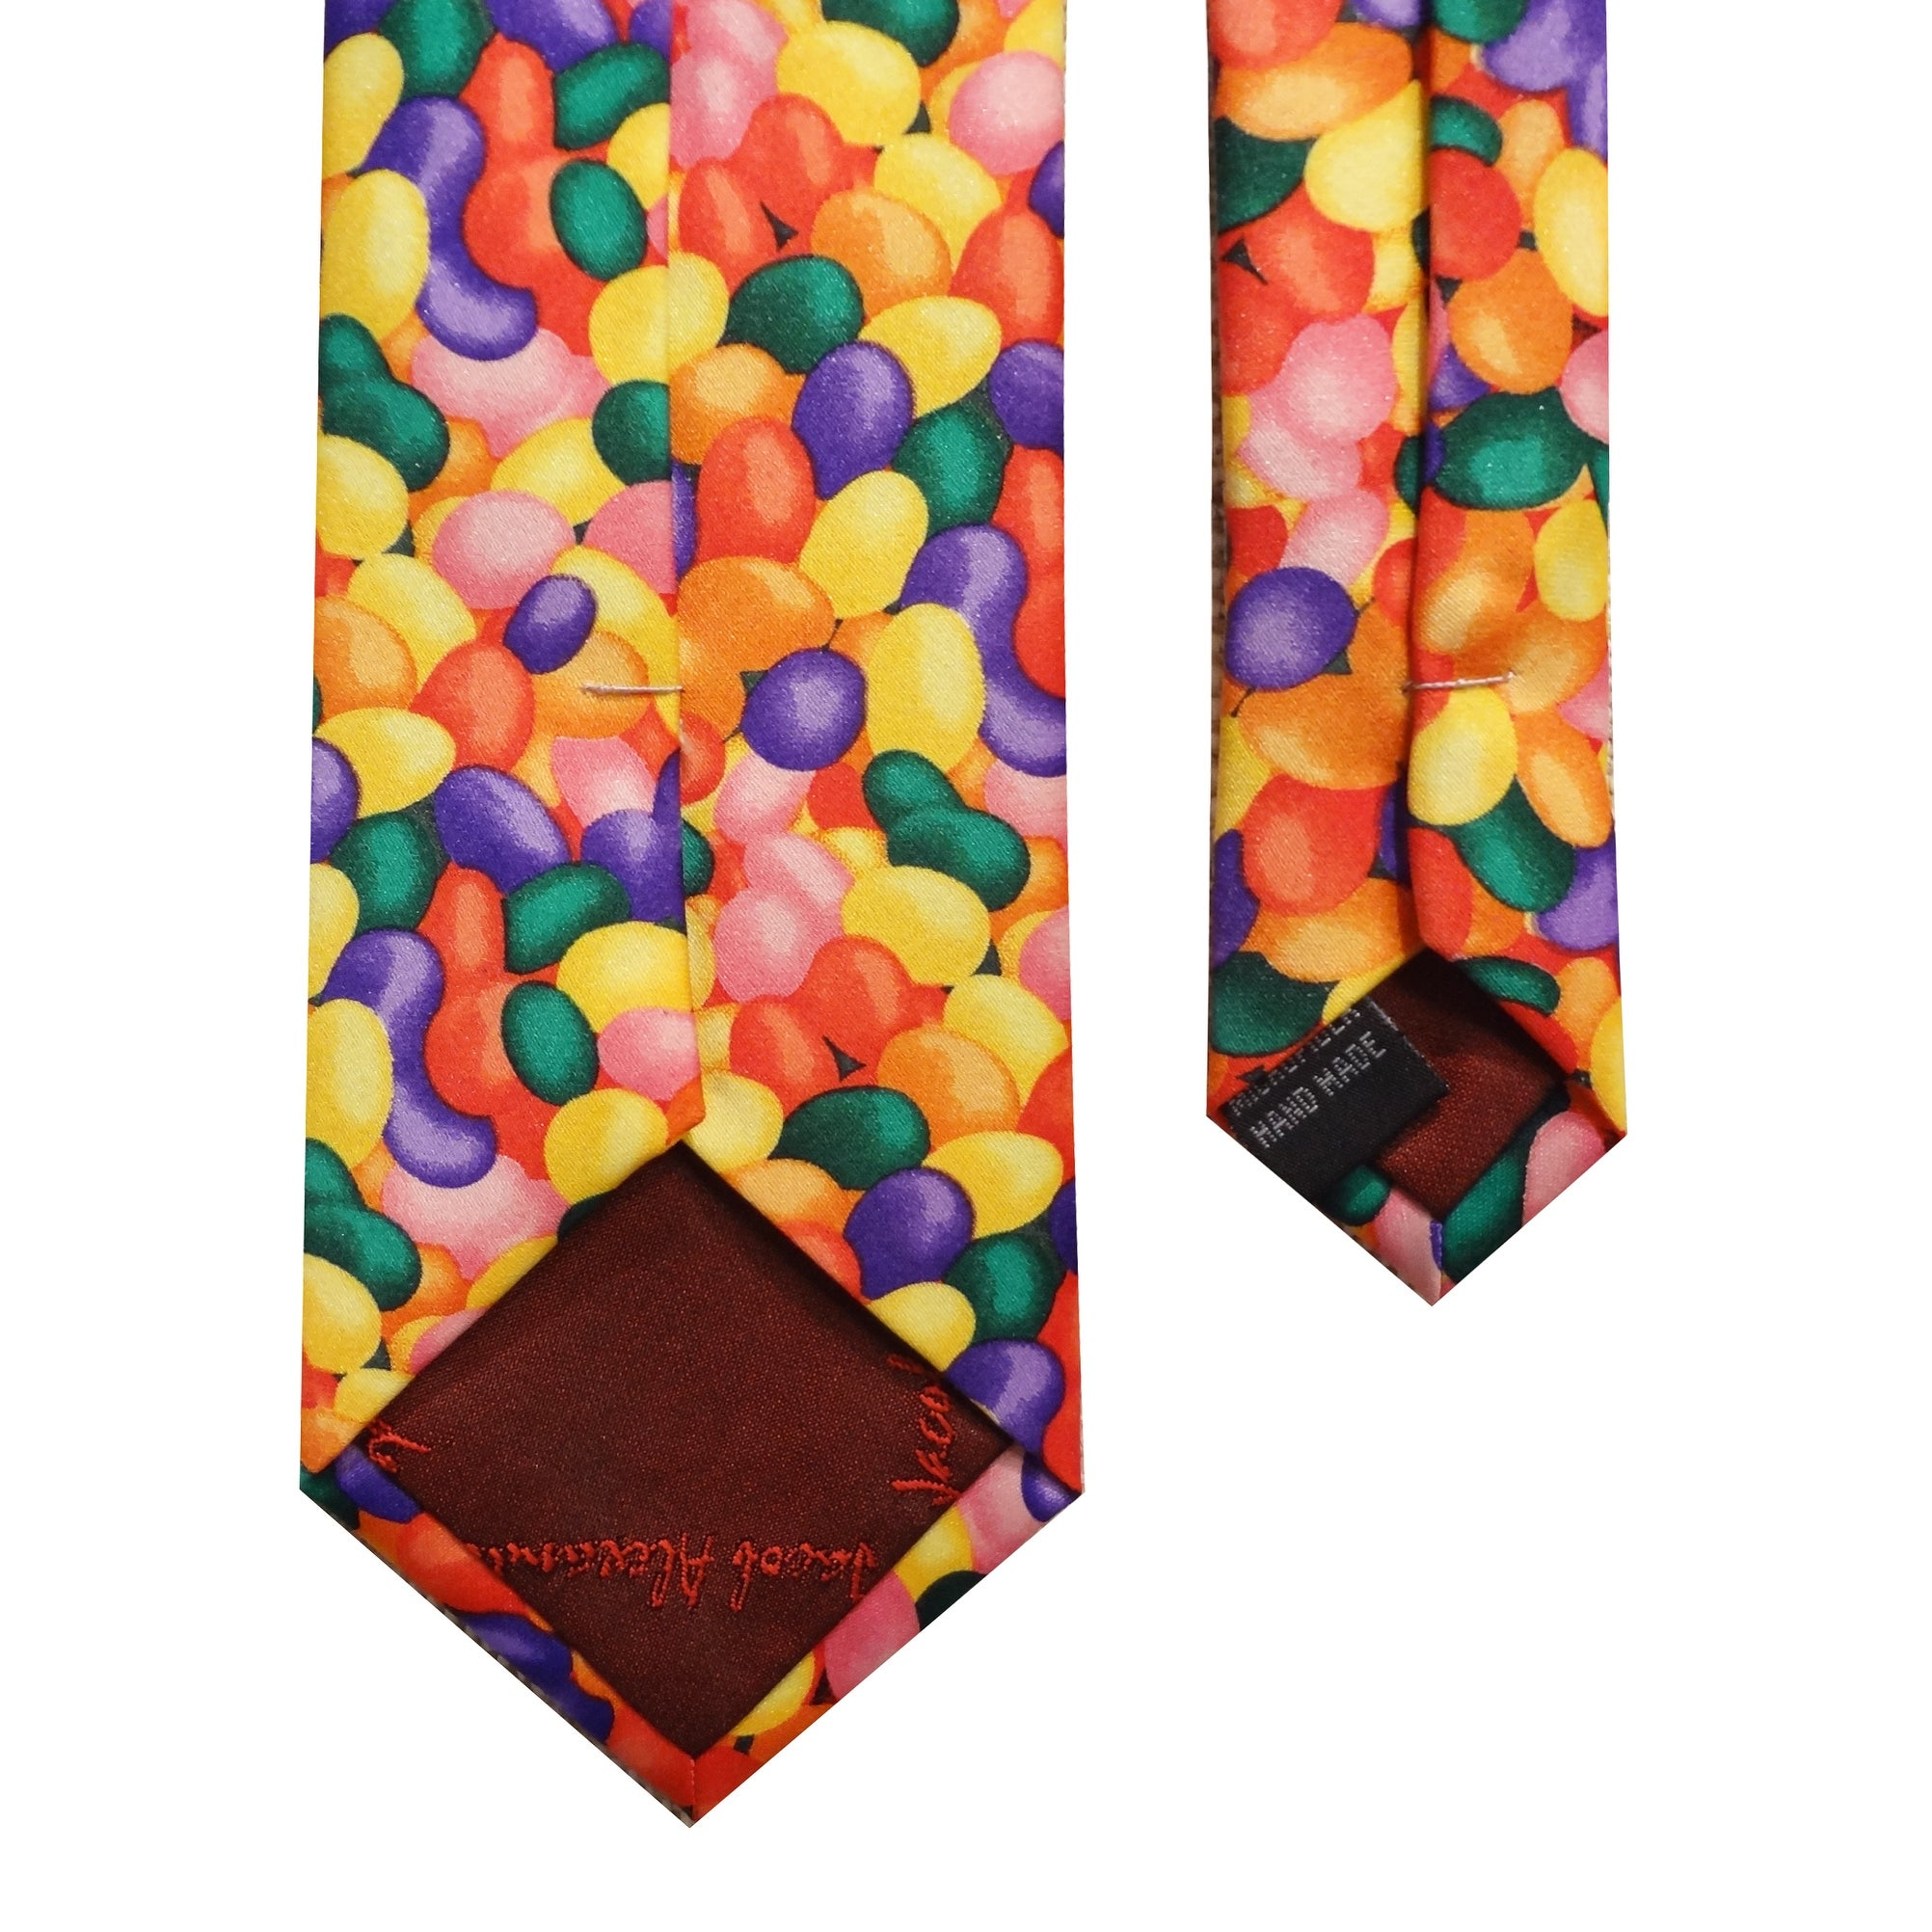 995030bfd5a0 Shop Boy's Kids Colorful Easter Multicolor Rainbow Candy Jelly Bean Spring  Neck Tie - Free Shipping On Orders Over $45 - Overstock - 20925984